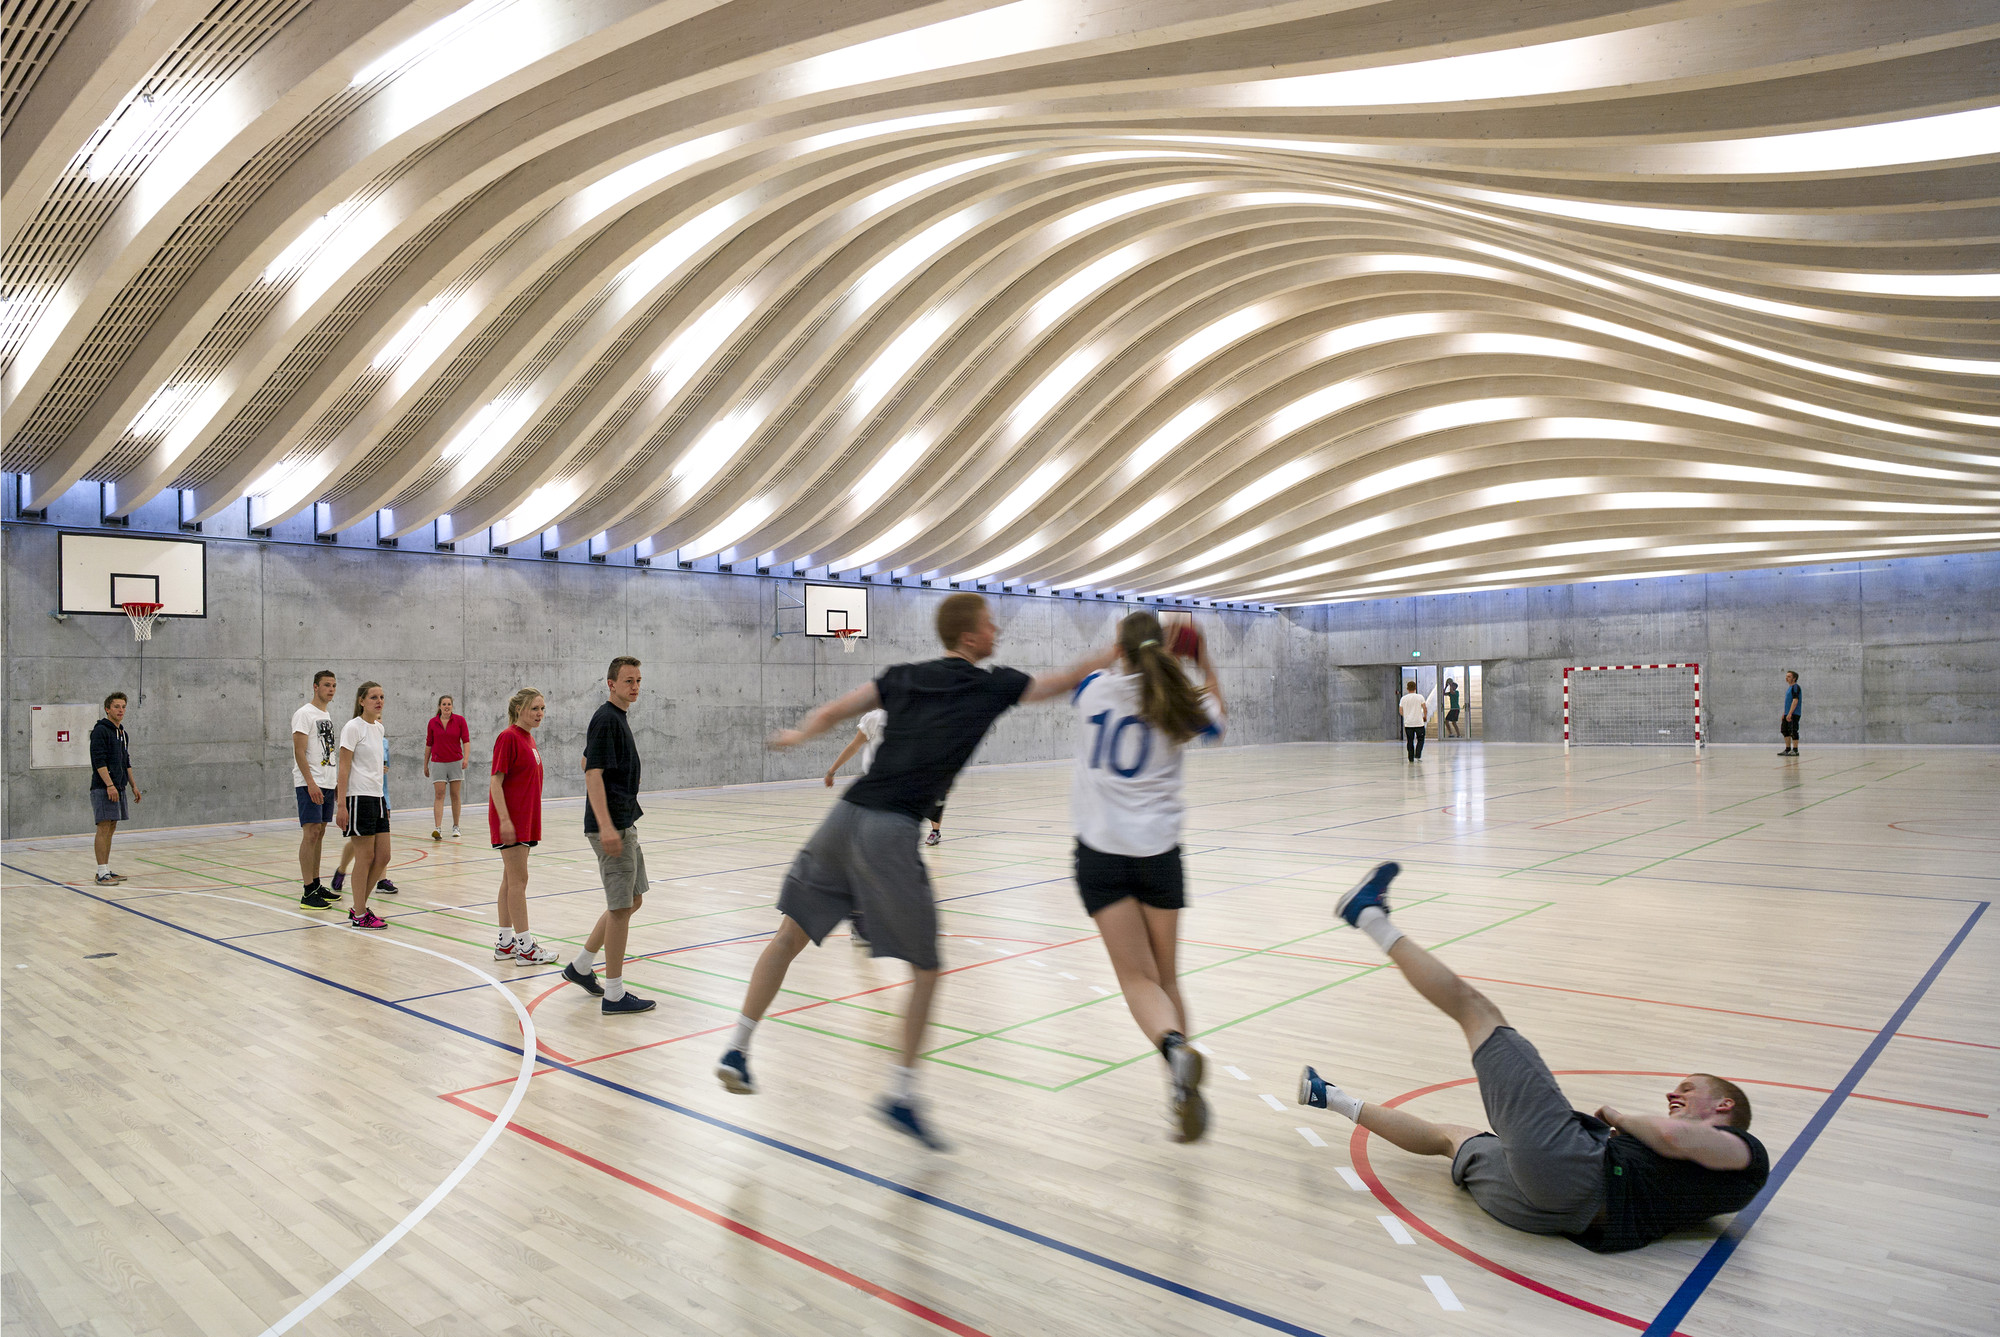 Seven Projects Honored with Inaugural Active Design Award, Gammel Hellerup High School Gymnasium and Multipurpose Hall / BIG © Jens Lindhe